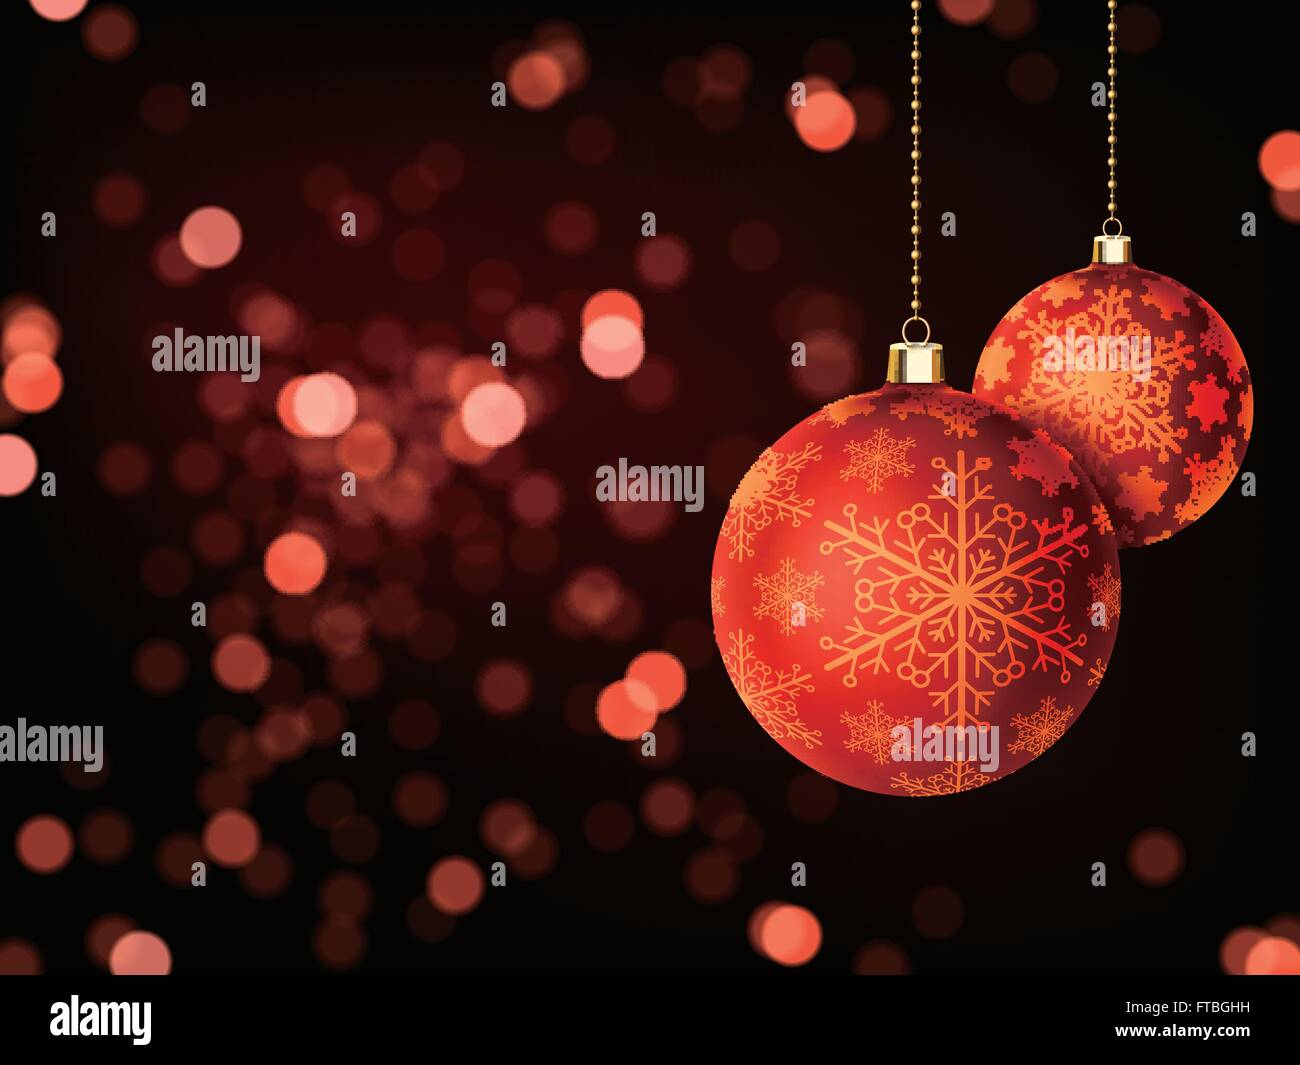 Christmas Background Gif Gorgeous Merry Christmas Background Design With Baubles Elements